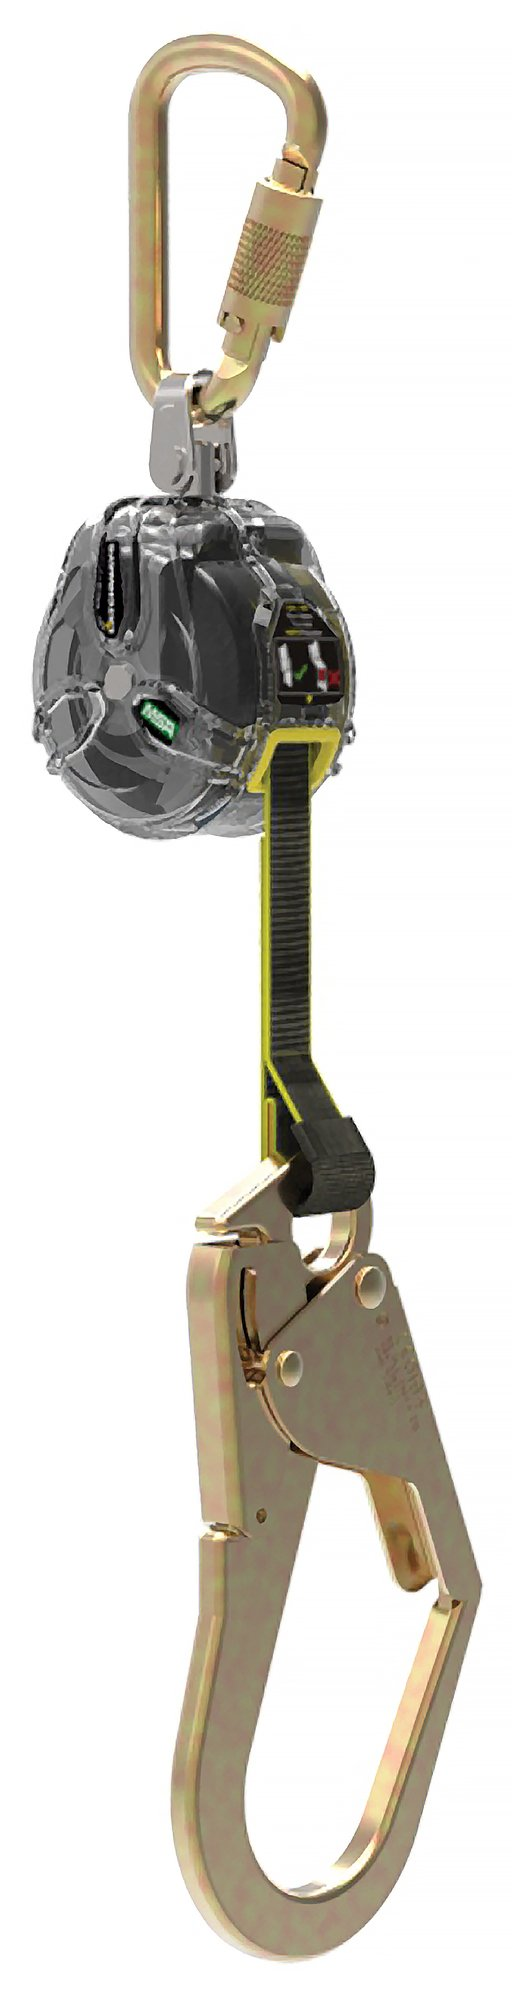 MSA 63011-00F Latchways V-TEC Mini Single-Leg Personal Fall Limiter with Top Steel Carabiner and 36CL Snap Hook, Small 6-Feet by MSA (Image #1)